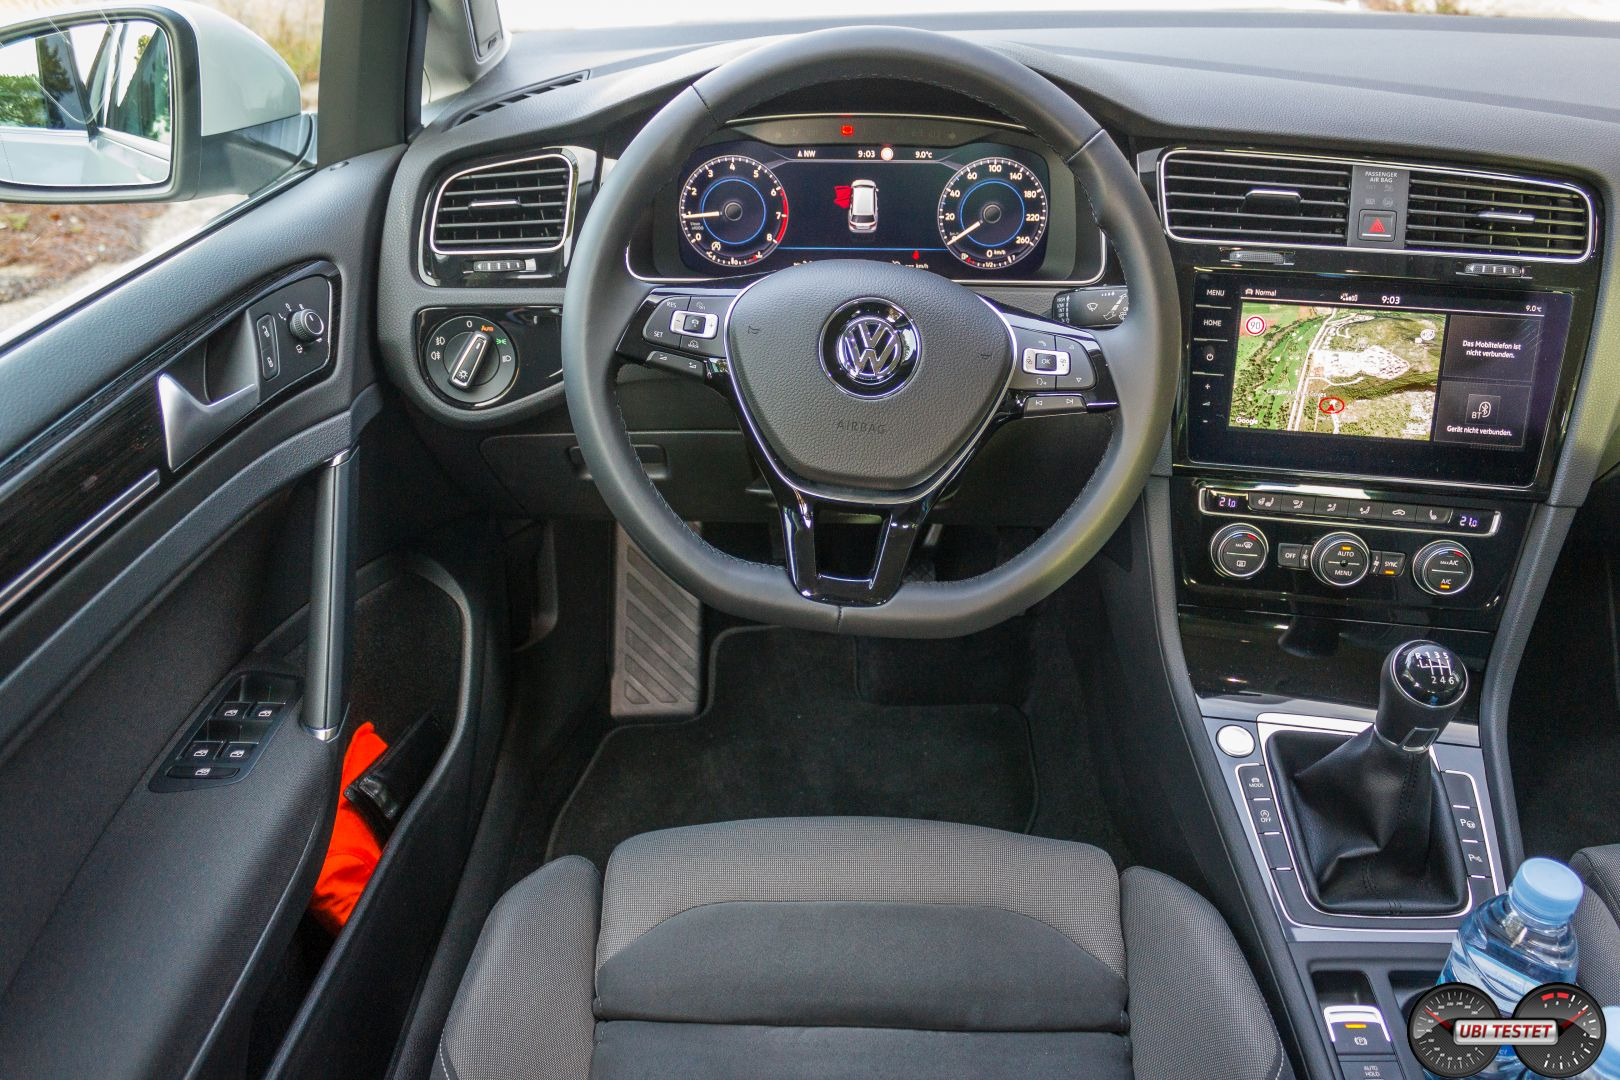 Vw golf 7 interieur 2017 ubi testet for Interieur golf